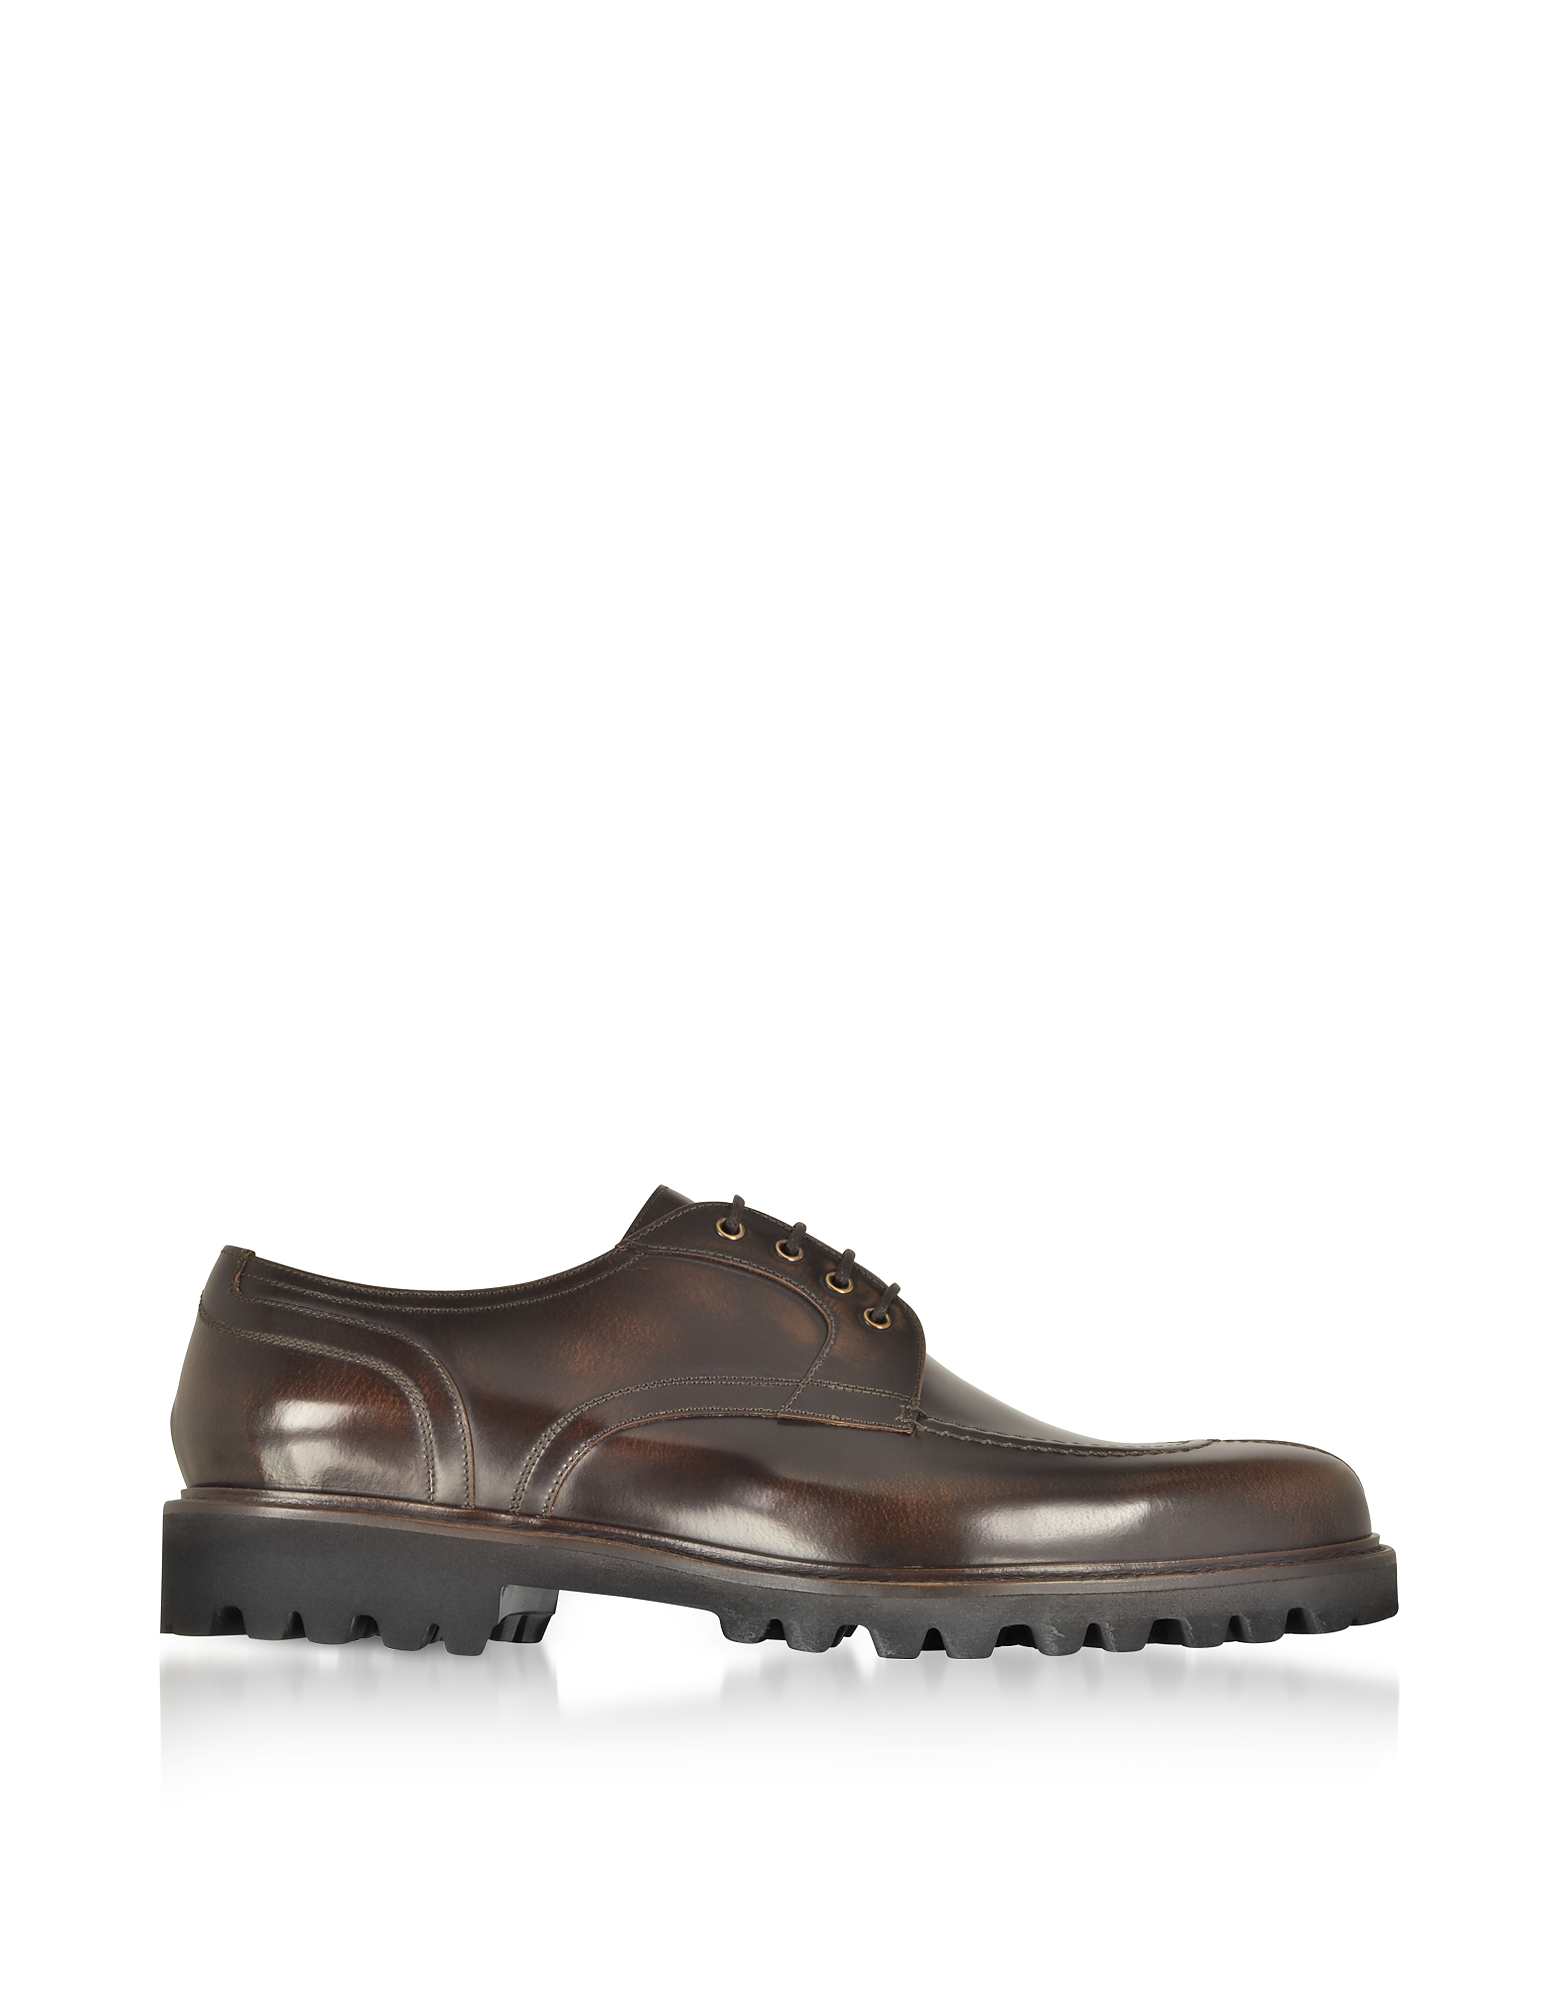 Fratelli Borgioli Shoes, Walnut Leather Casual Derby Extralight Sole